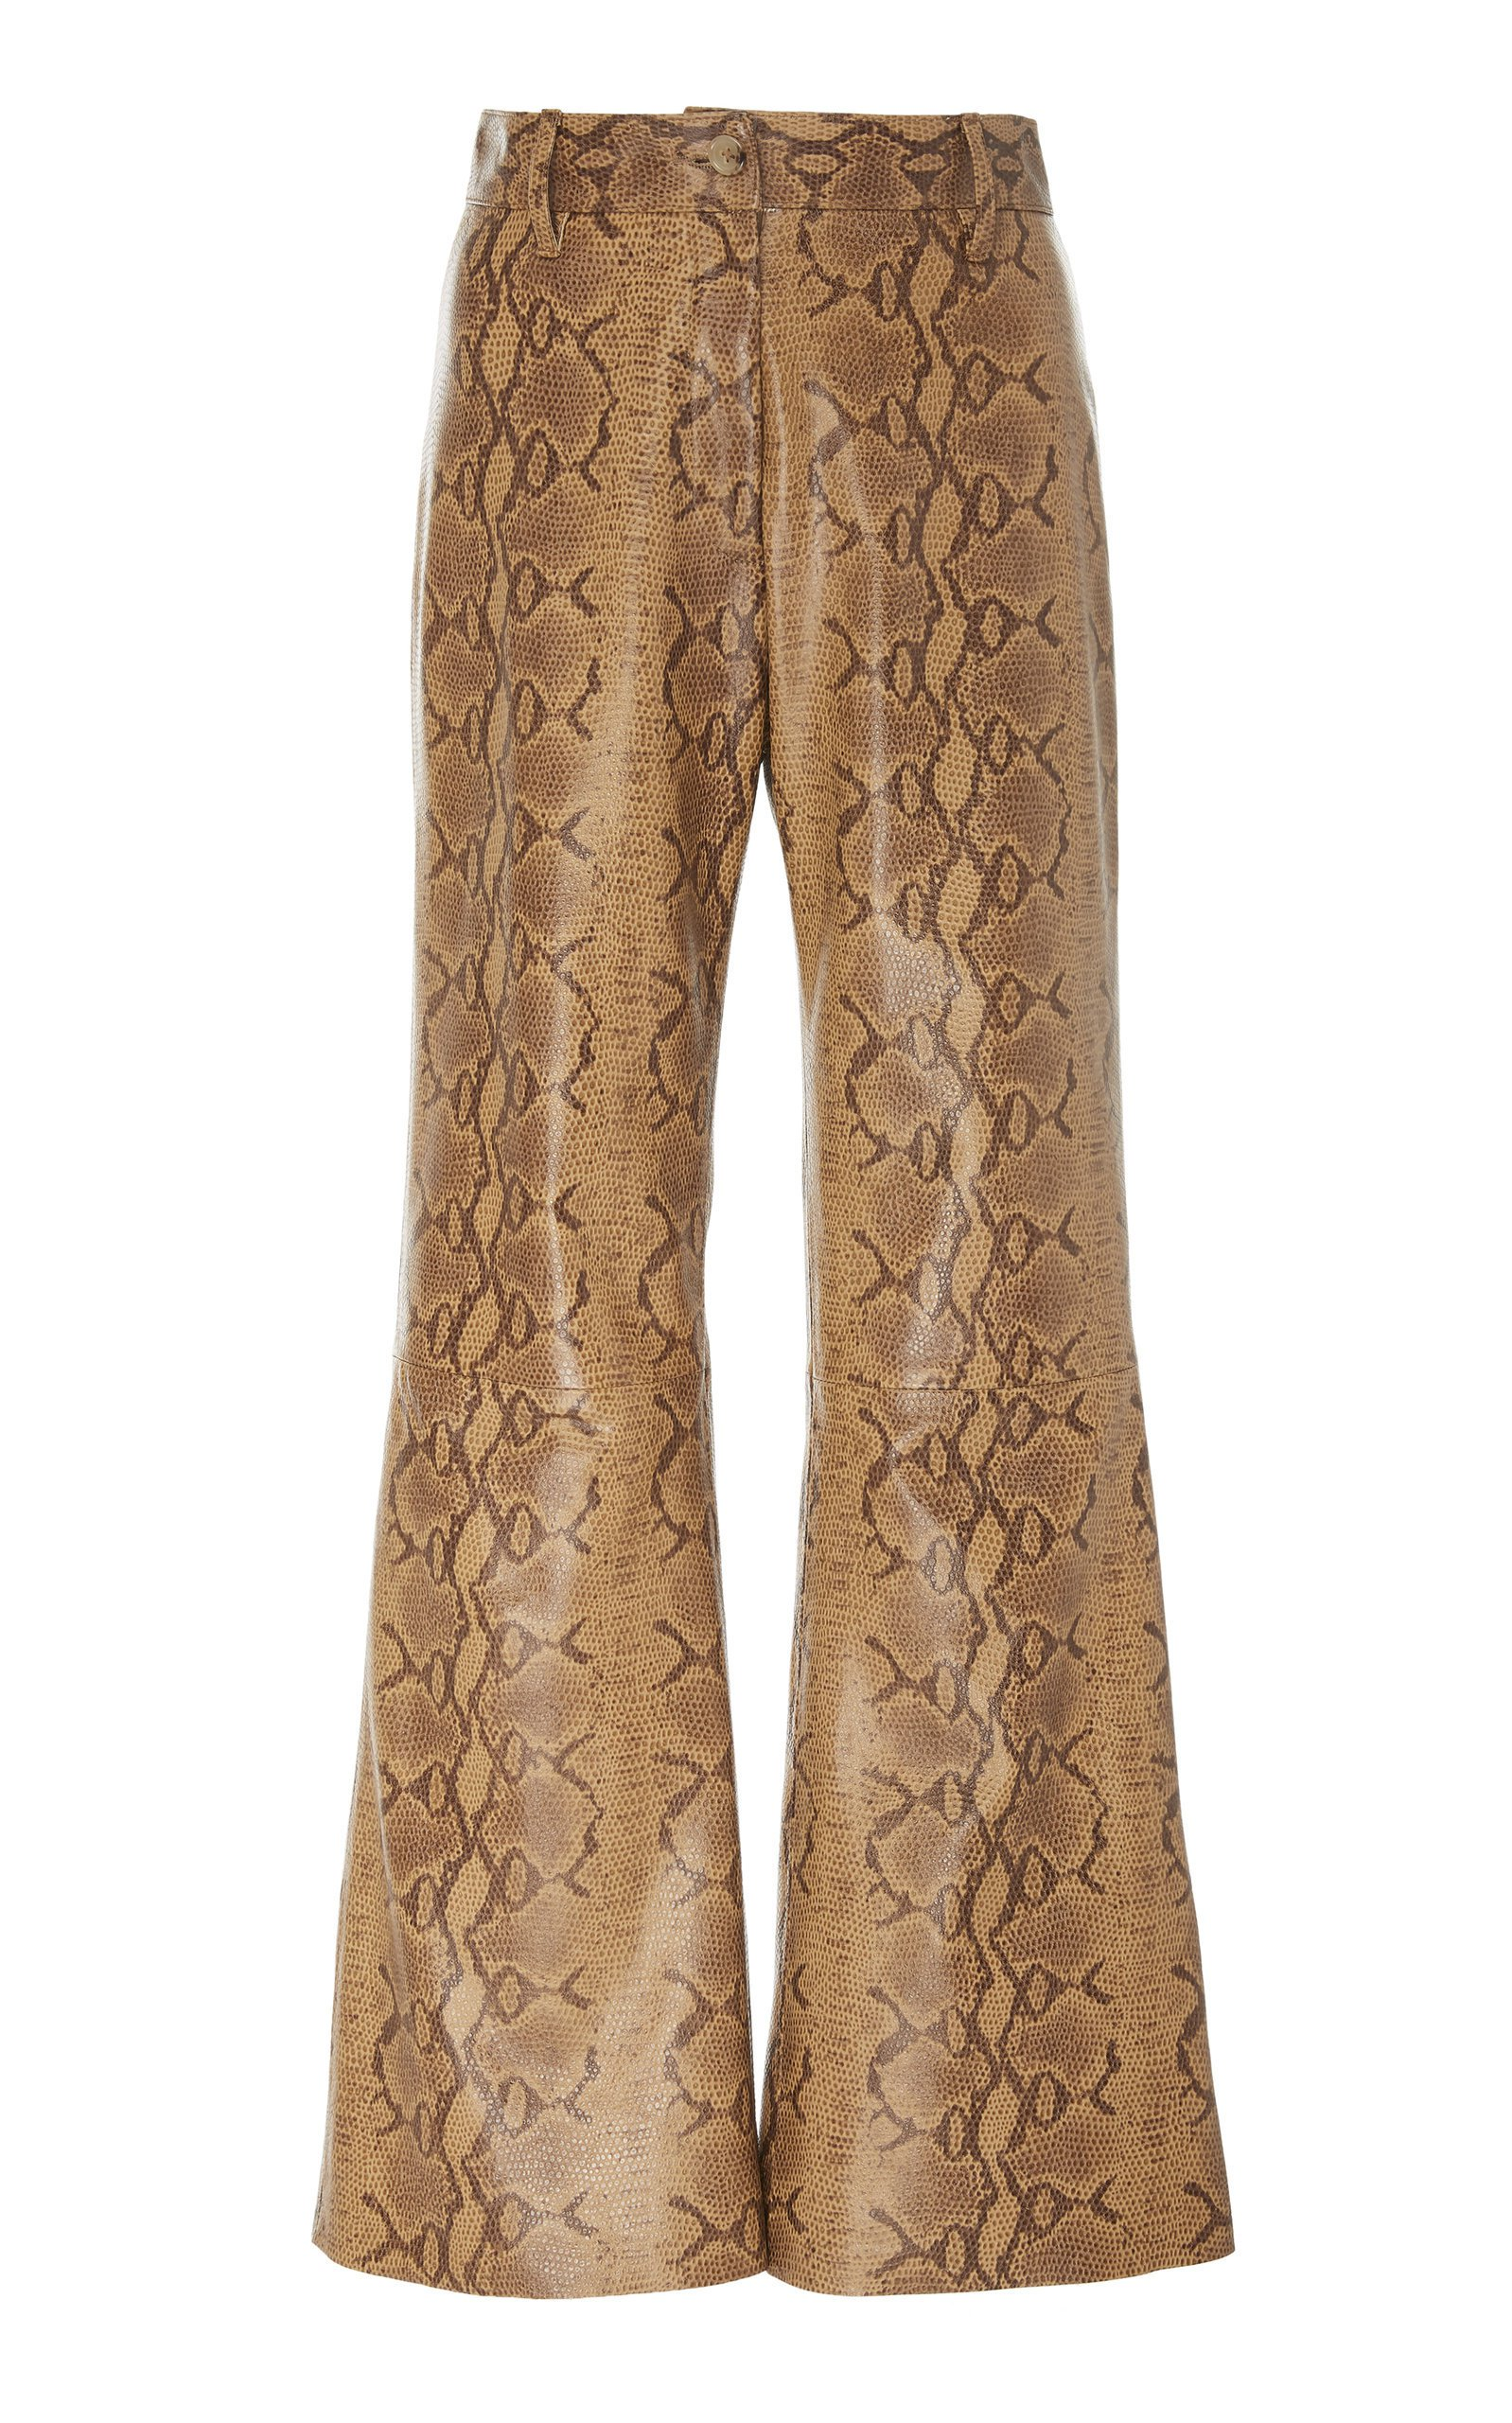 NILI LOTAN Vianna Cropped Leather Pant Size: 4